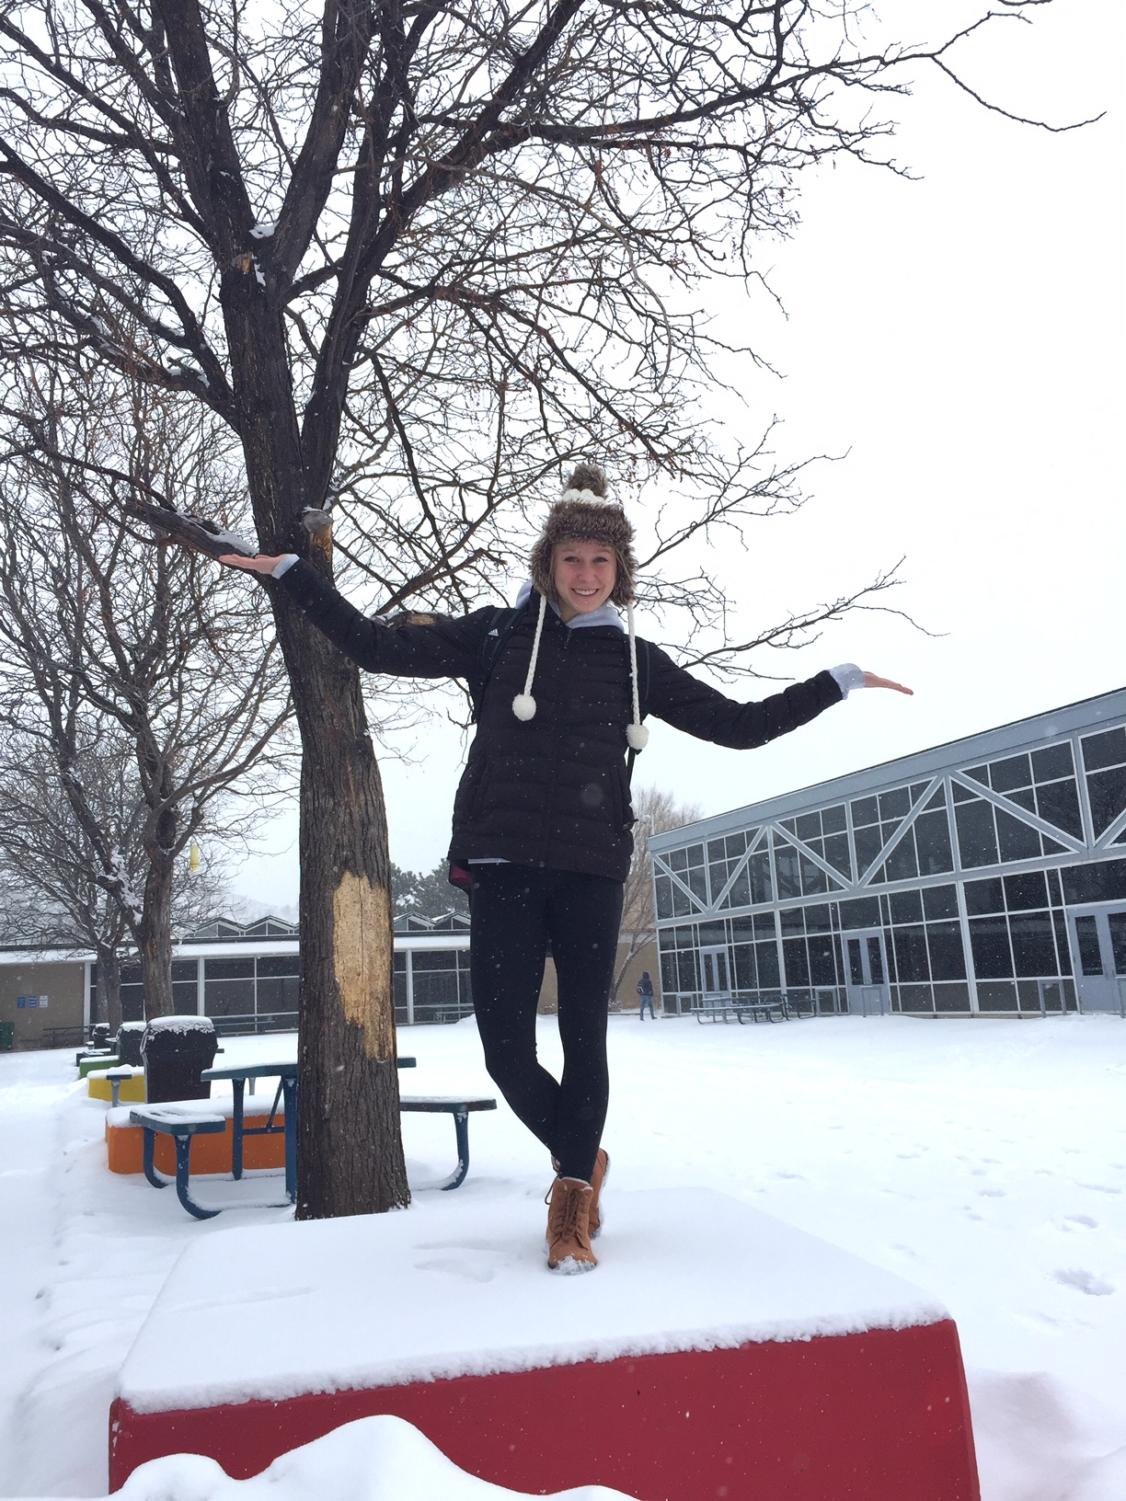 Senior Aleks Olesiak enjoys the winter weather.